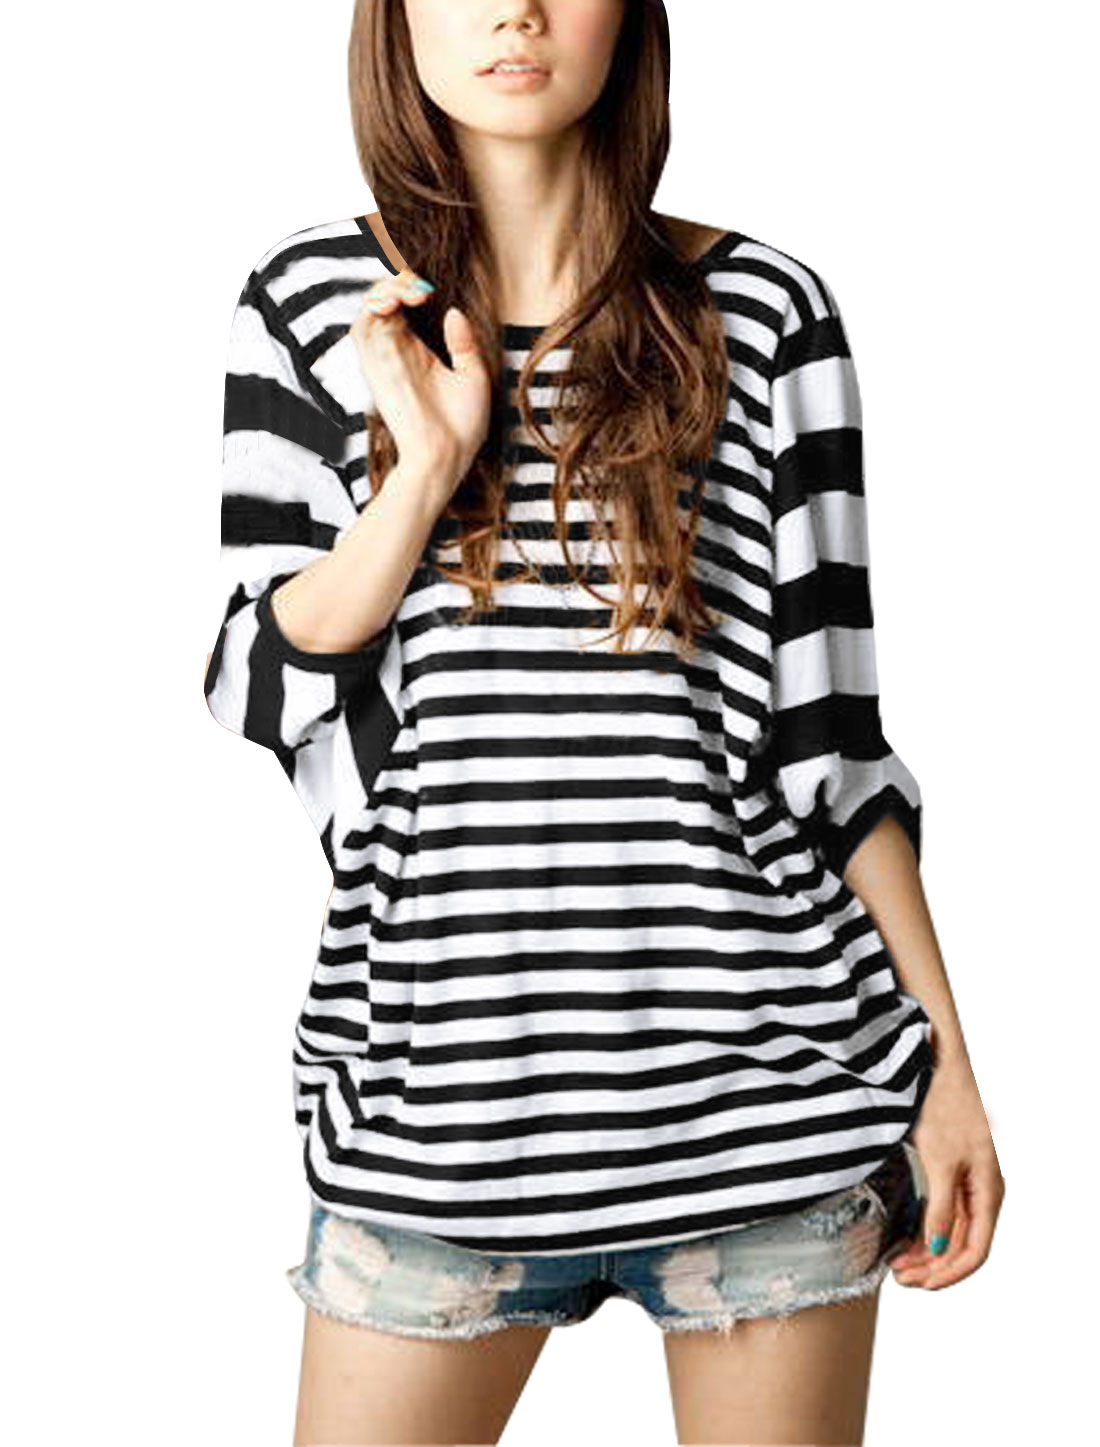 Black White Bar Striped Dolman Sleeve Shirt M for Women